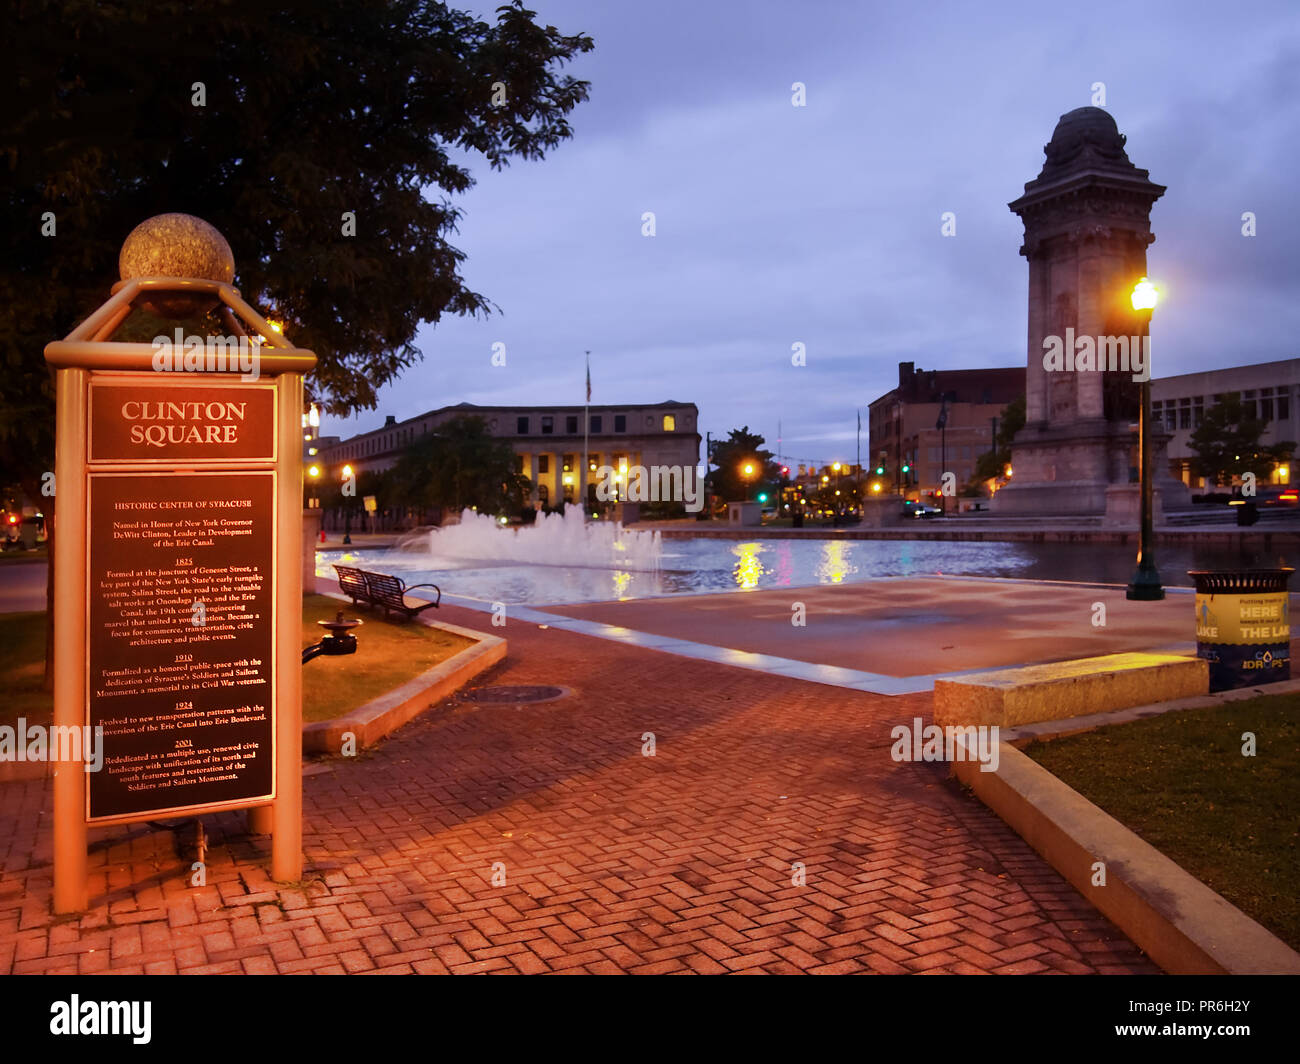 Syracuse, New York, USA. September 29, 2018. Plaque in Clinton Square in downtown Syracuse, NY, describing it's history and that of the Erie Canal whi - Stock Image